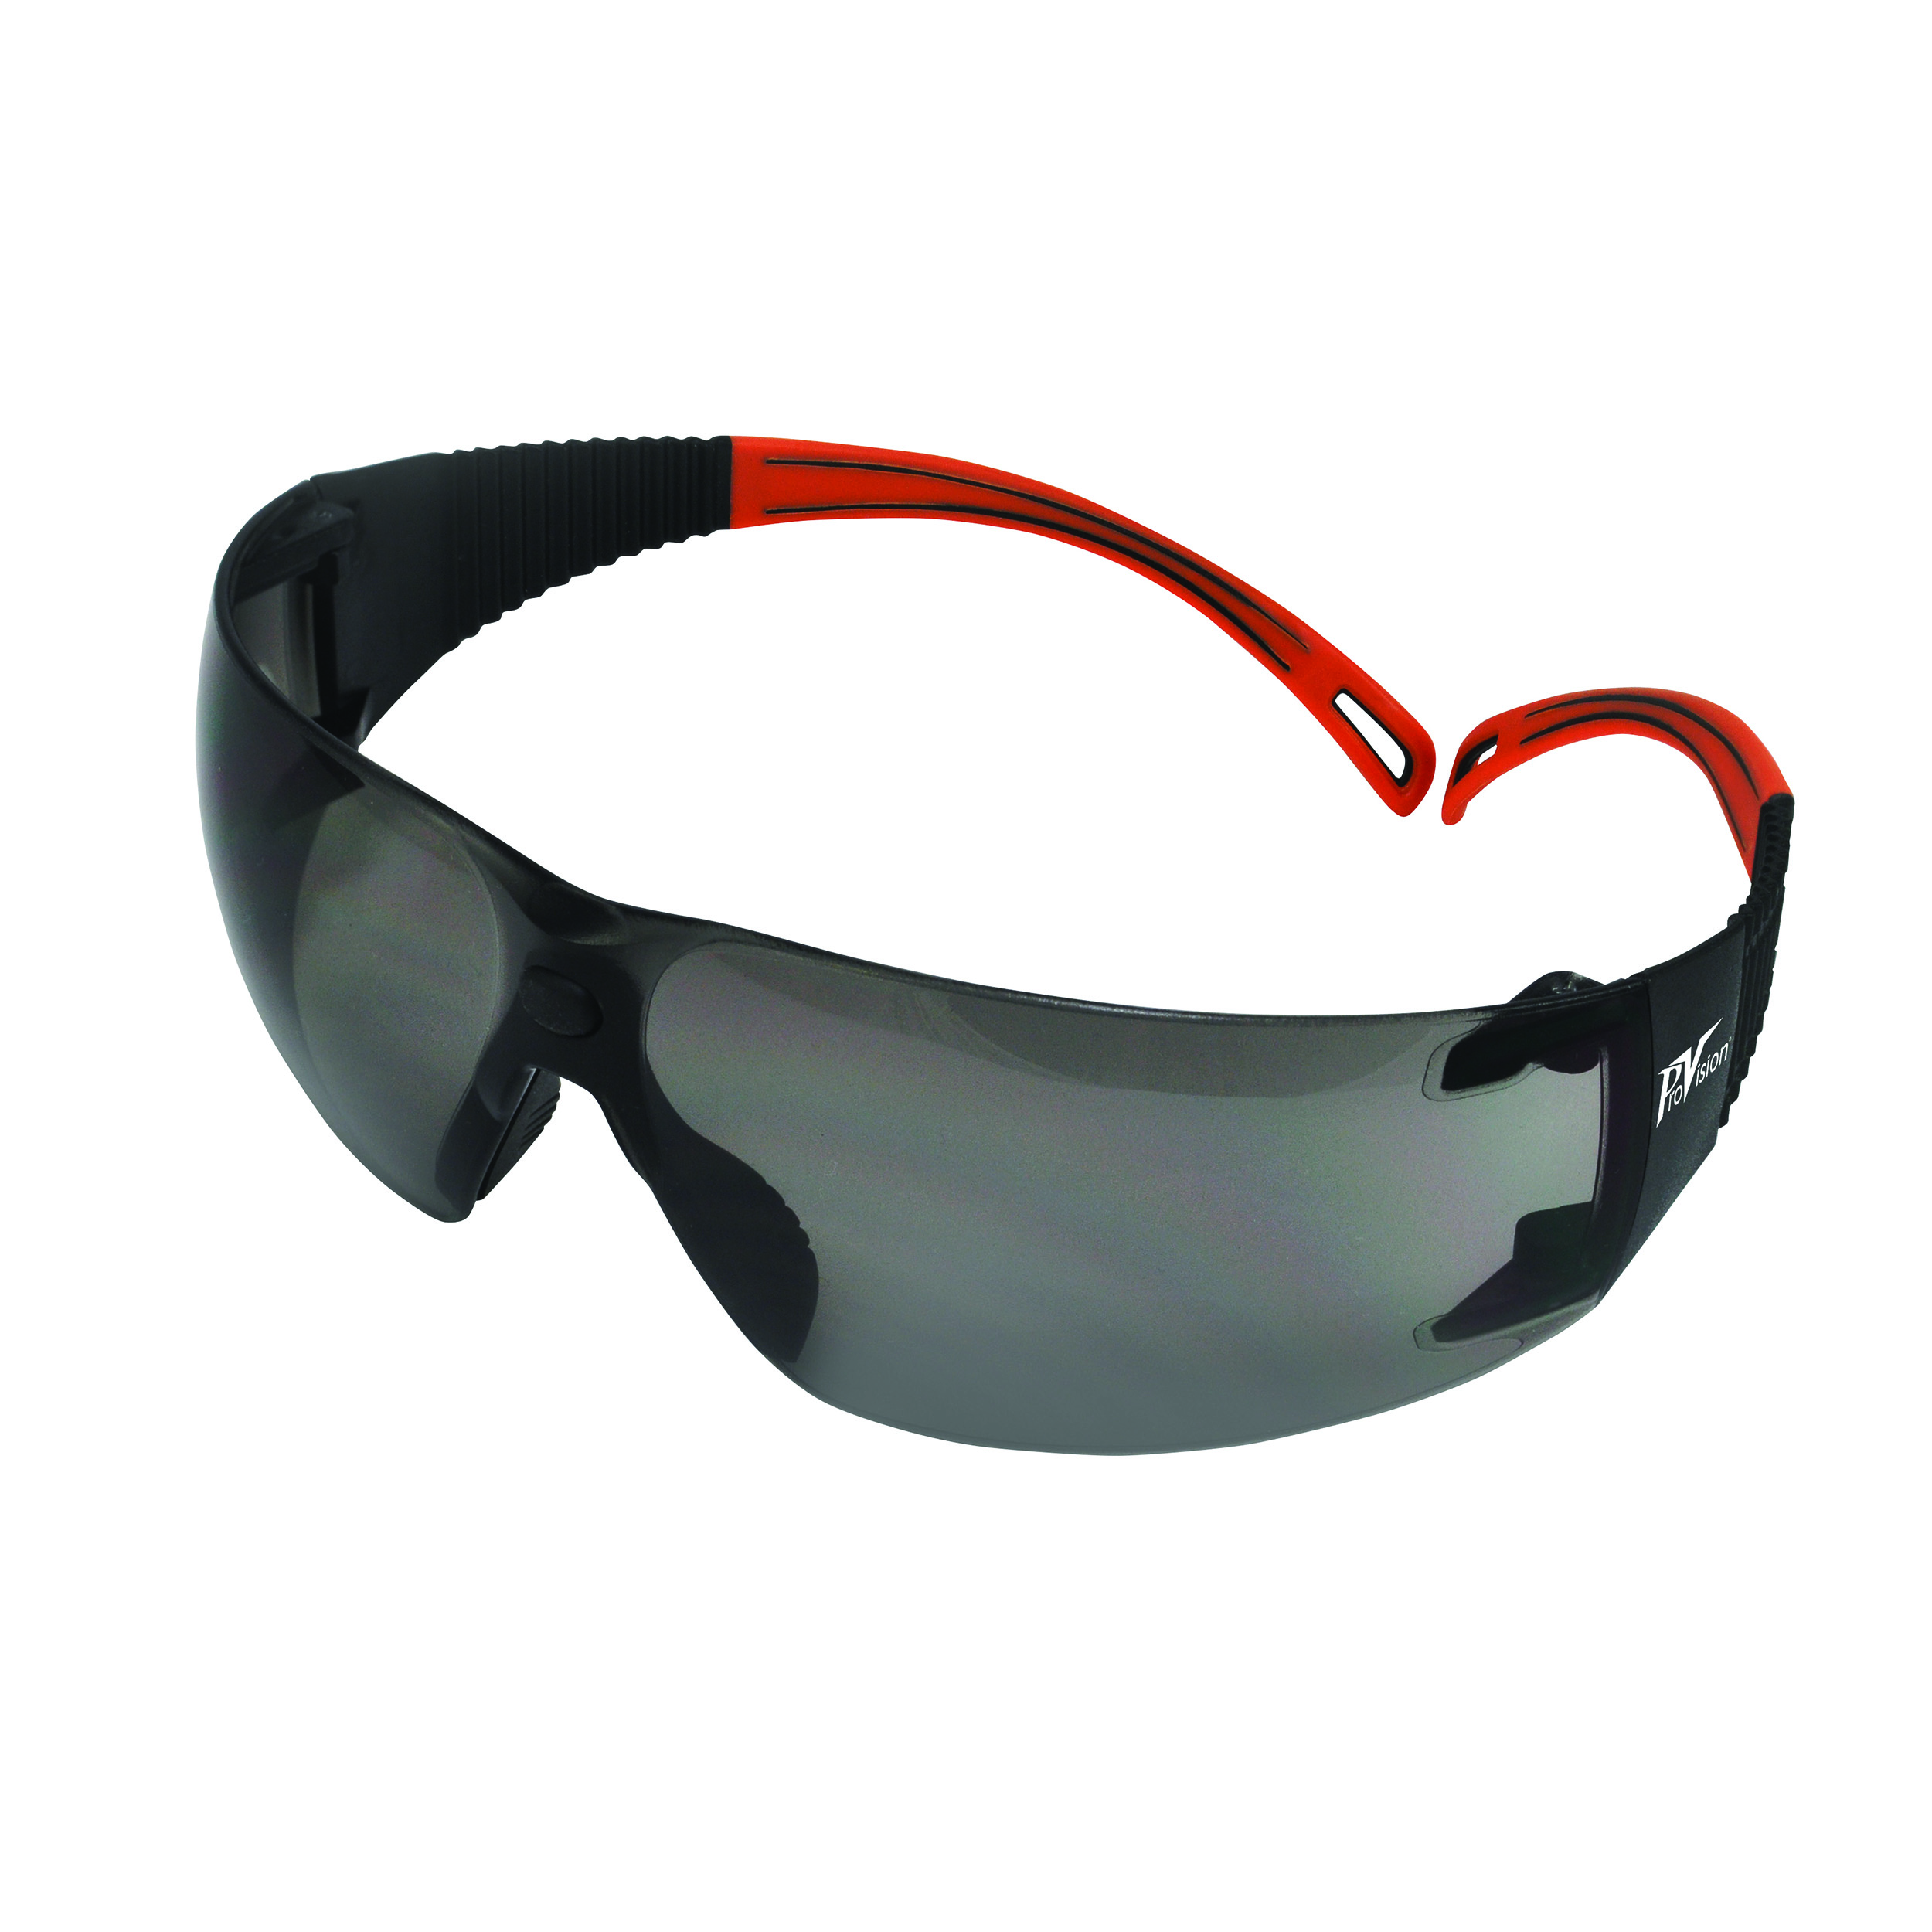 9200125 ProVision Flexiwrap Eyewear Black Frame, Orange Tips, Grey Lens, 3609OG